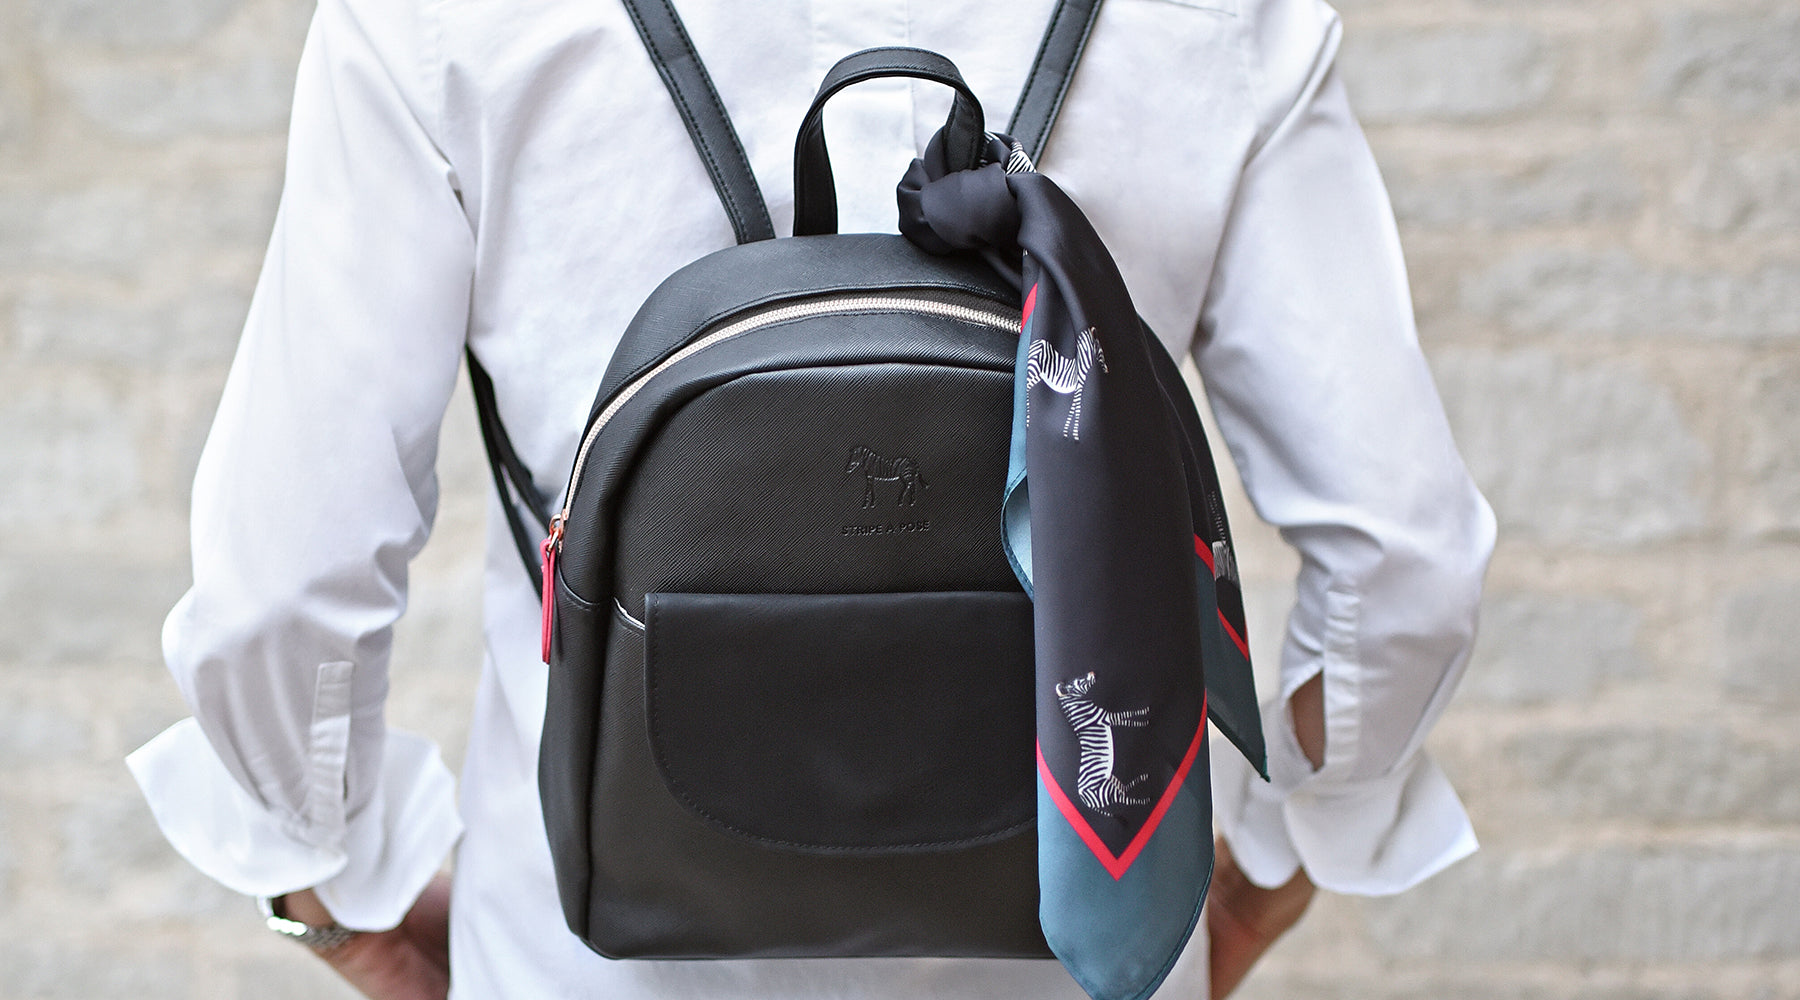 Fashionable, functional backpacks & rucksacks by Sophie Allport